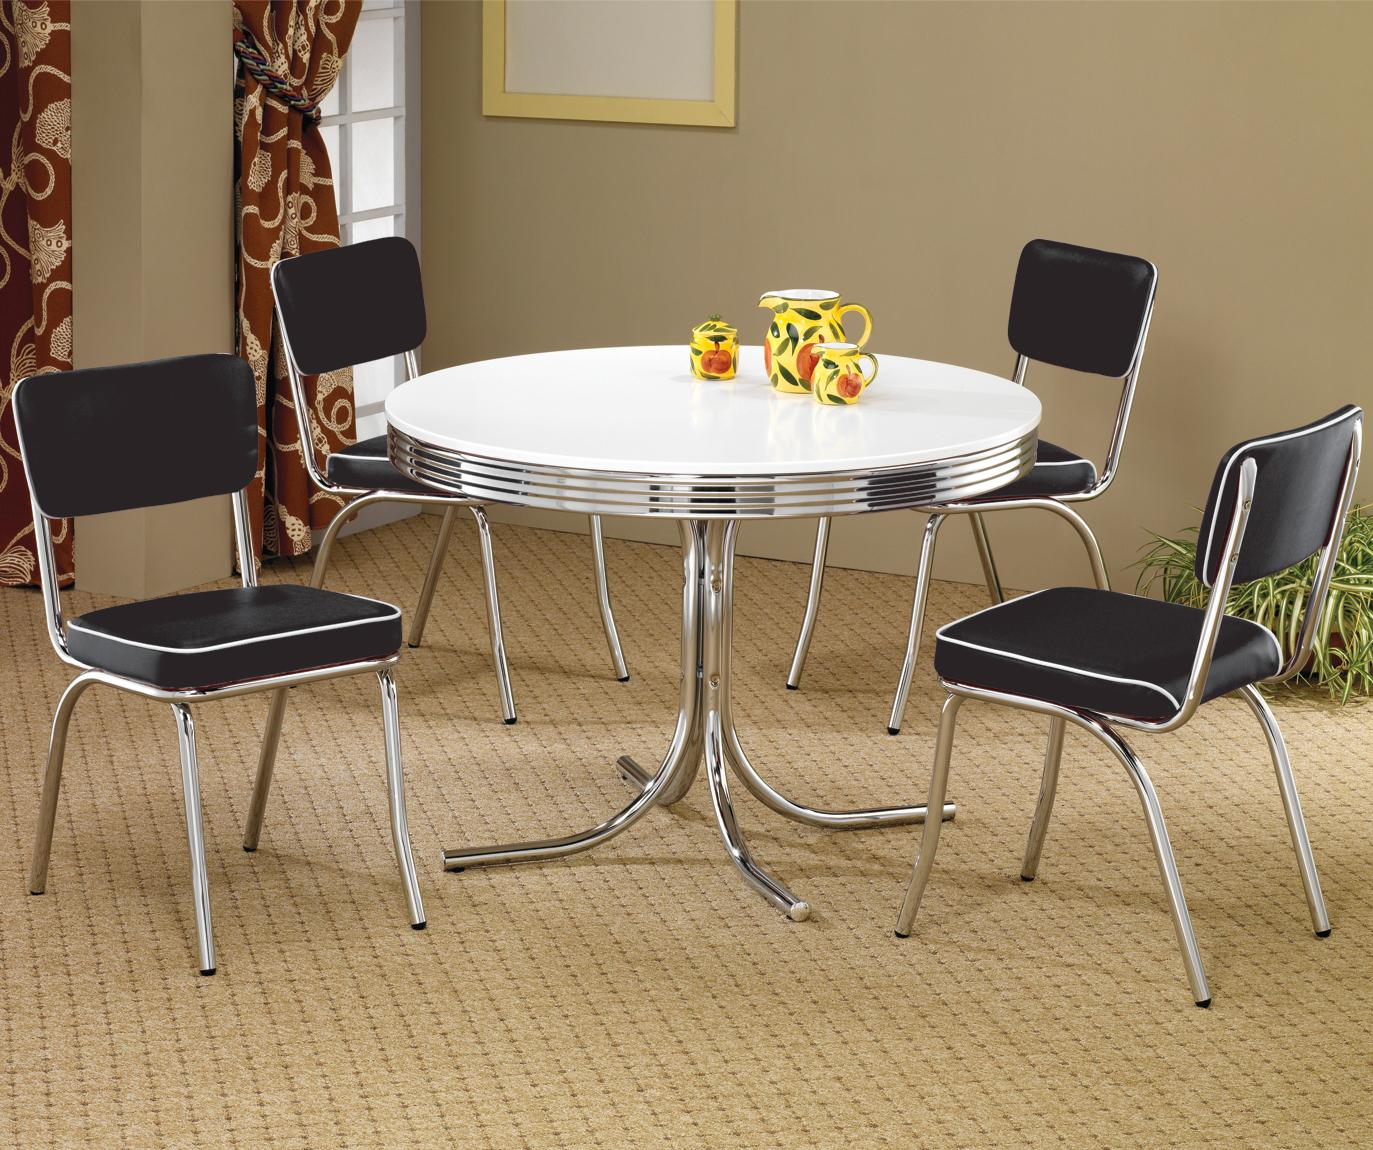 Coaster Cleveland 5 Piece Round Dining Table Upholstered Chairs Rife S Home Furniture Dining 5 Piece Sets